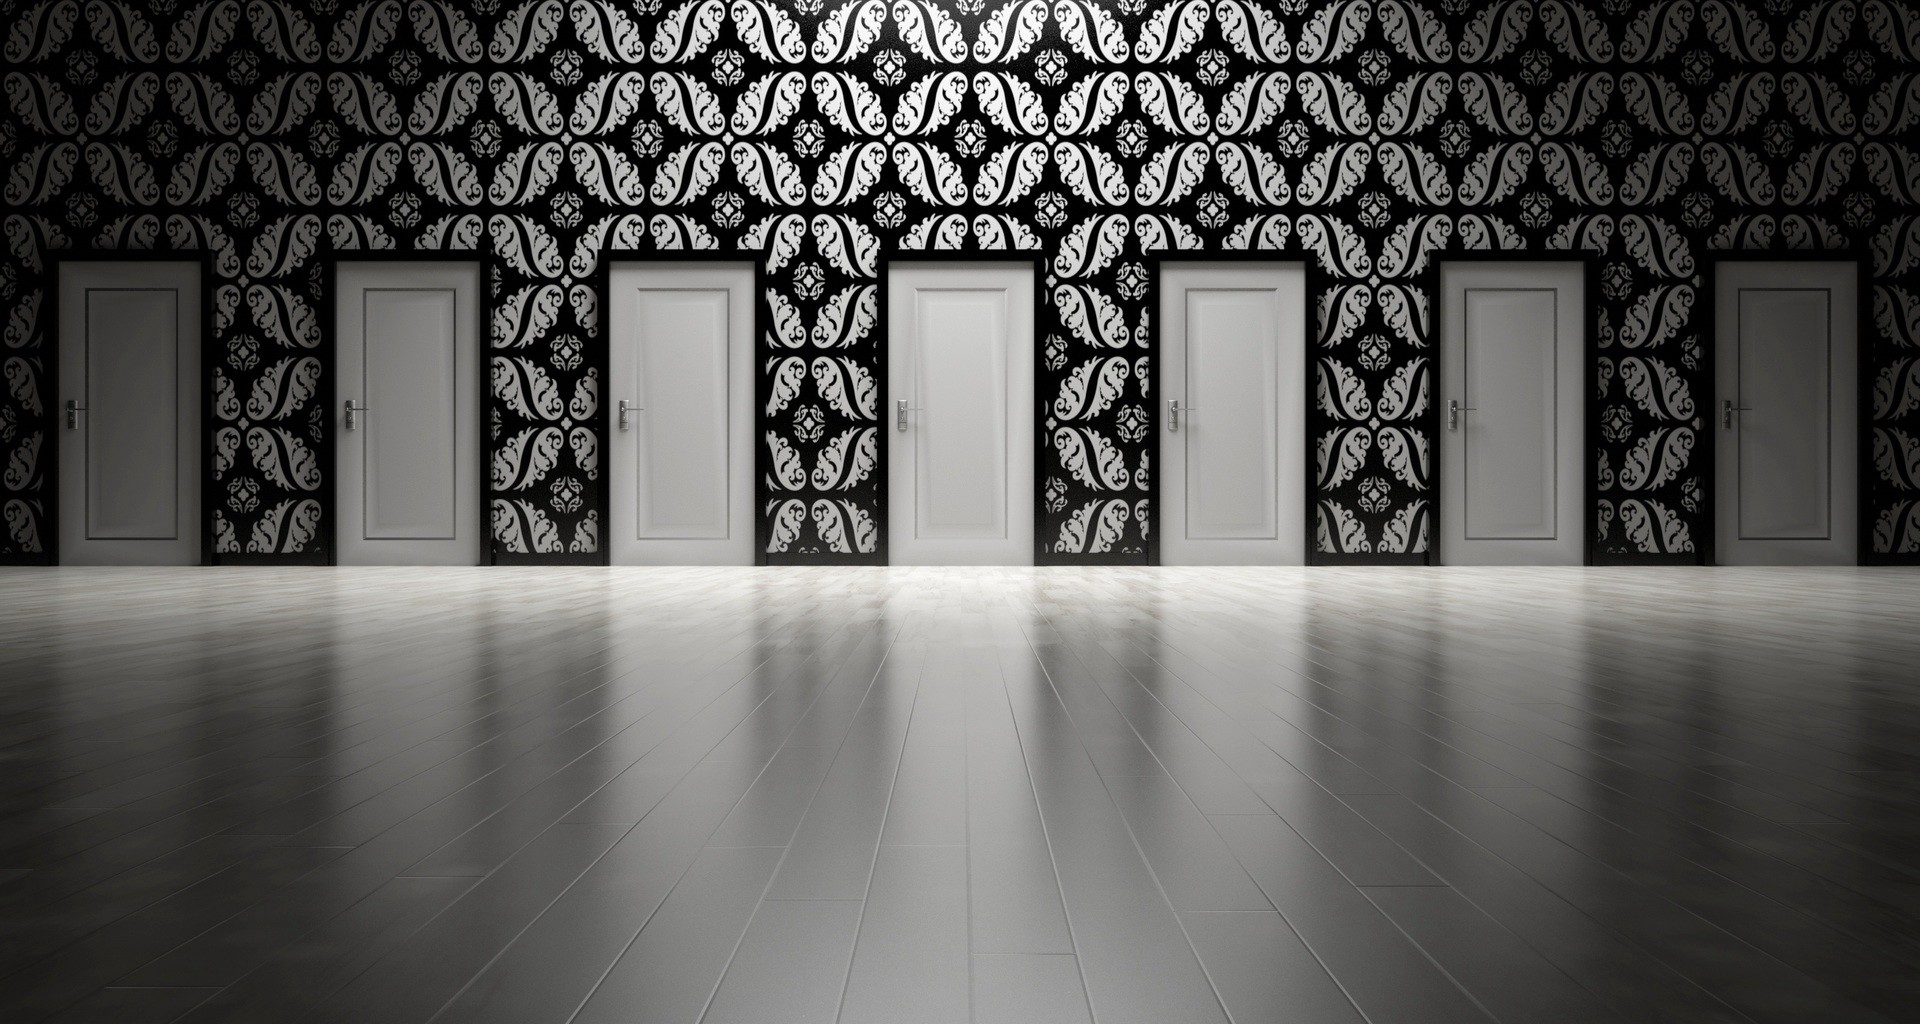 A row of identical doors at the end of a room, illustrating the difficult decision-making involved in using ARIA.